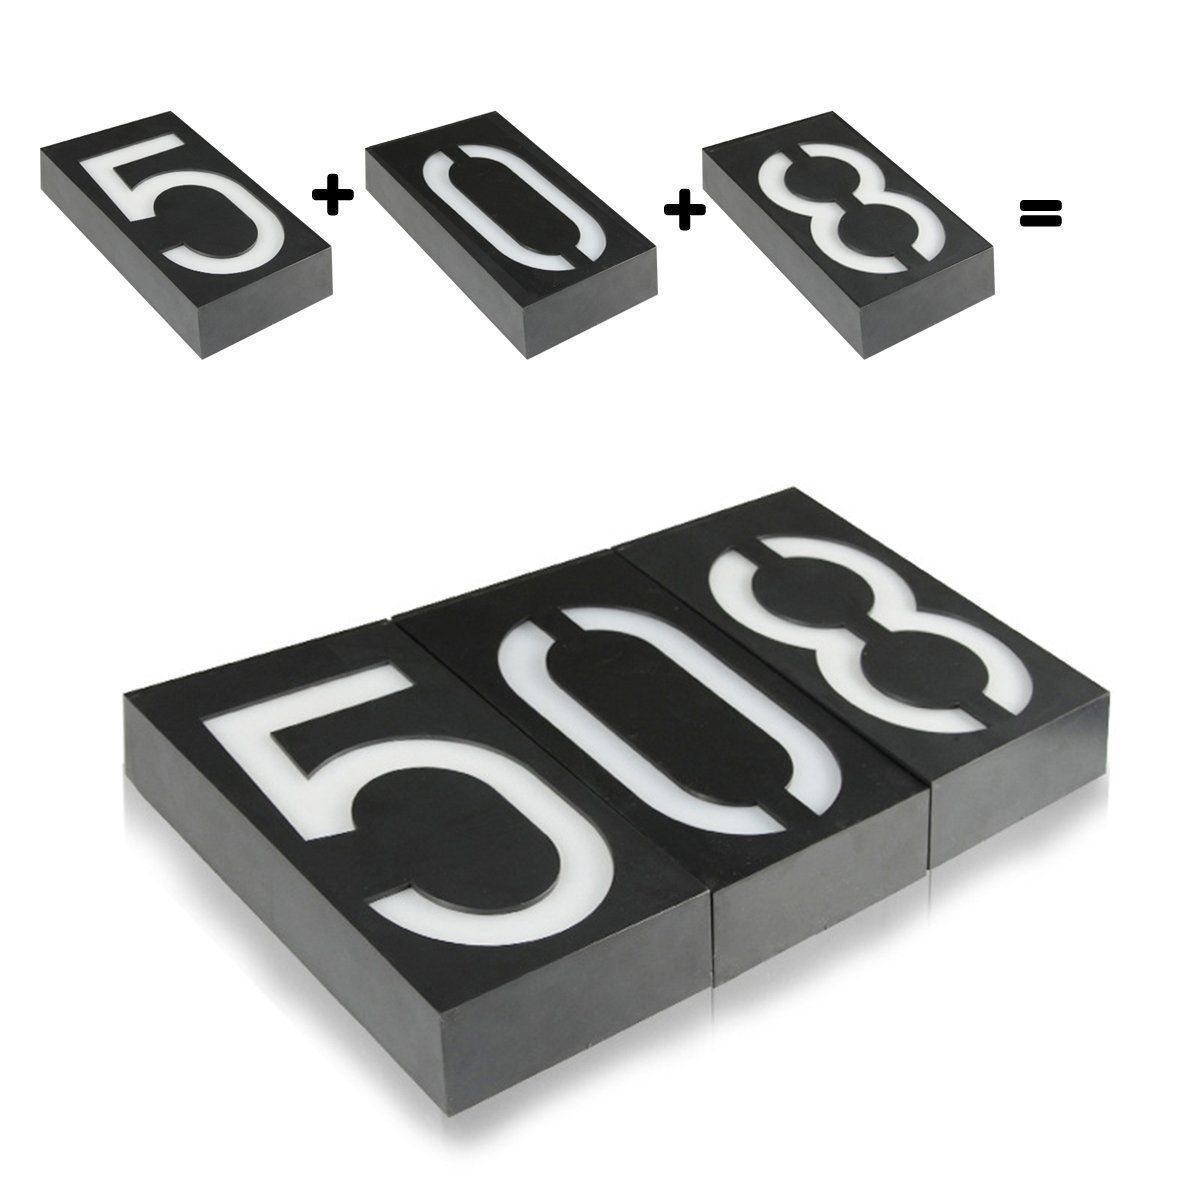 New Solar Powered 6 LED Illuminated House Door Number Light Wall Plaque Metal Re